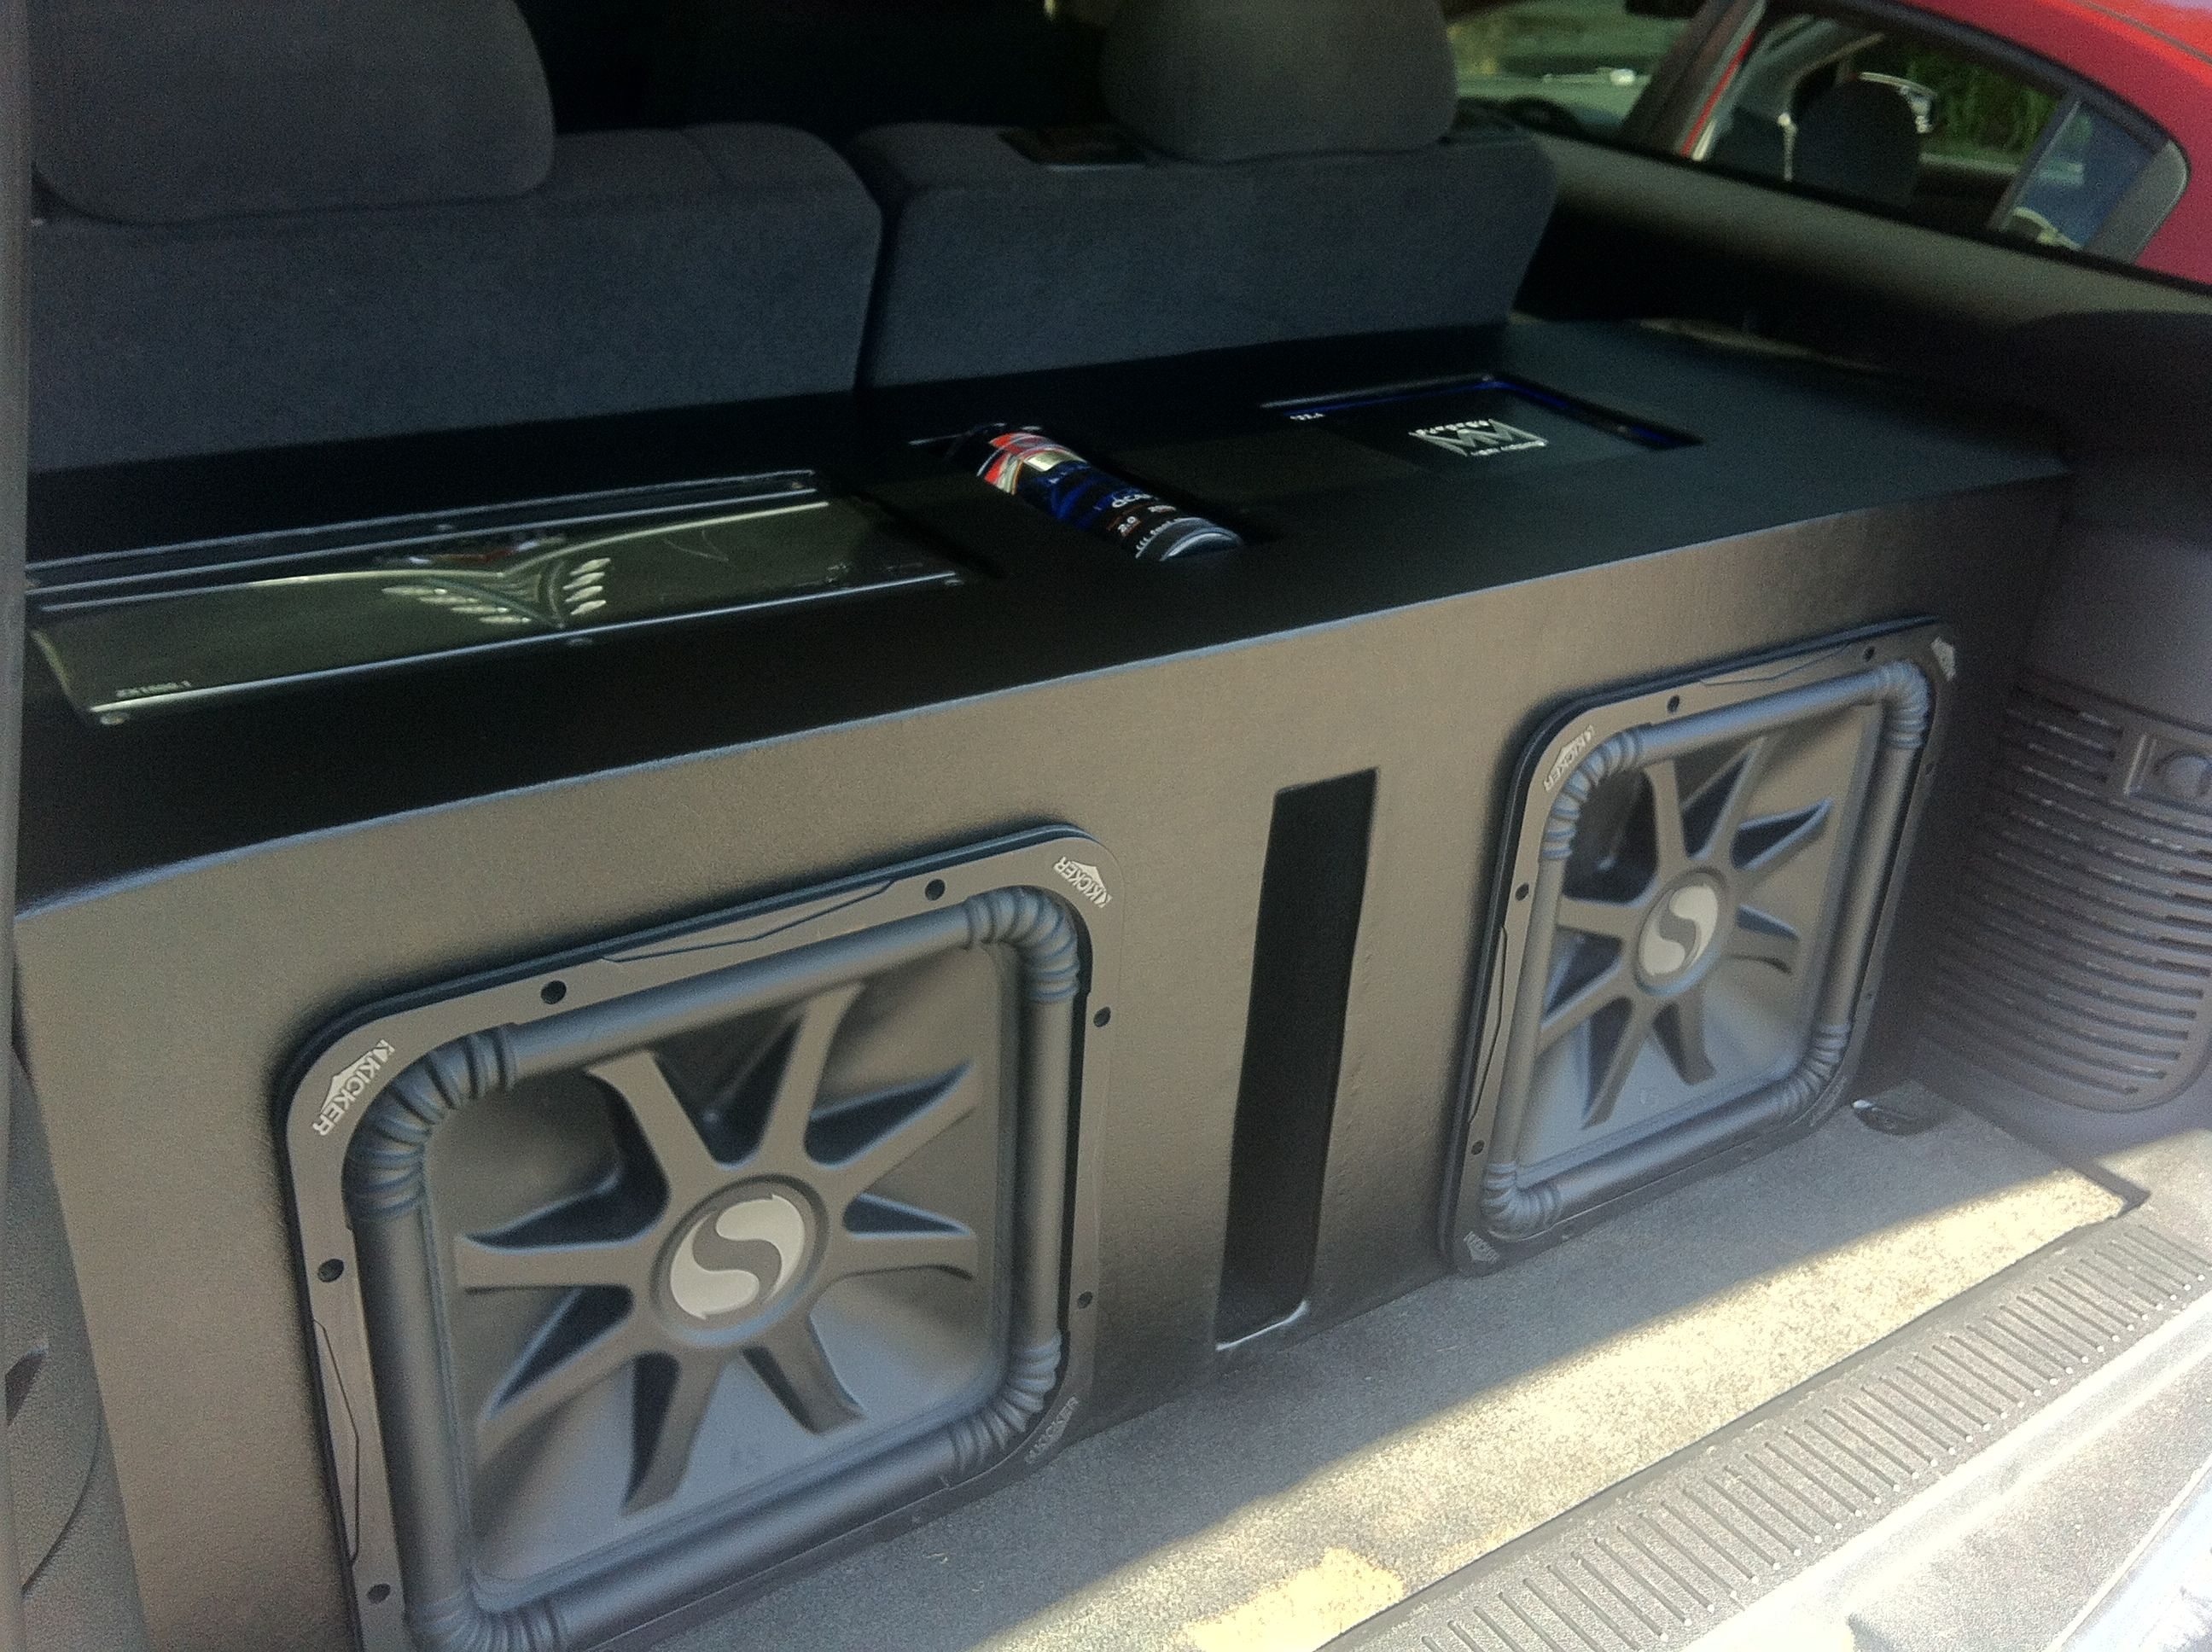 Kicker L7 Sound System Ive Always Wanted One For My Car